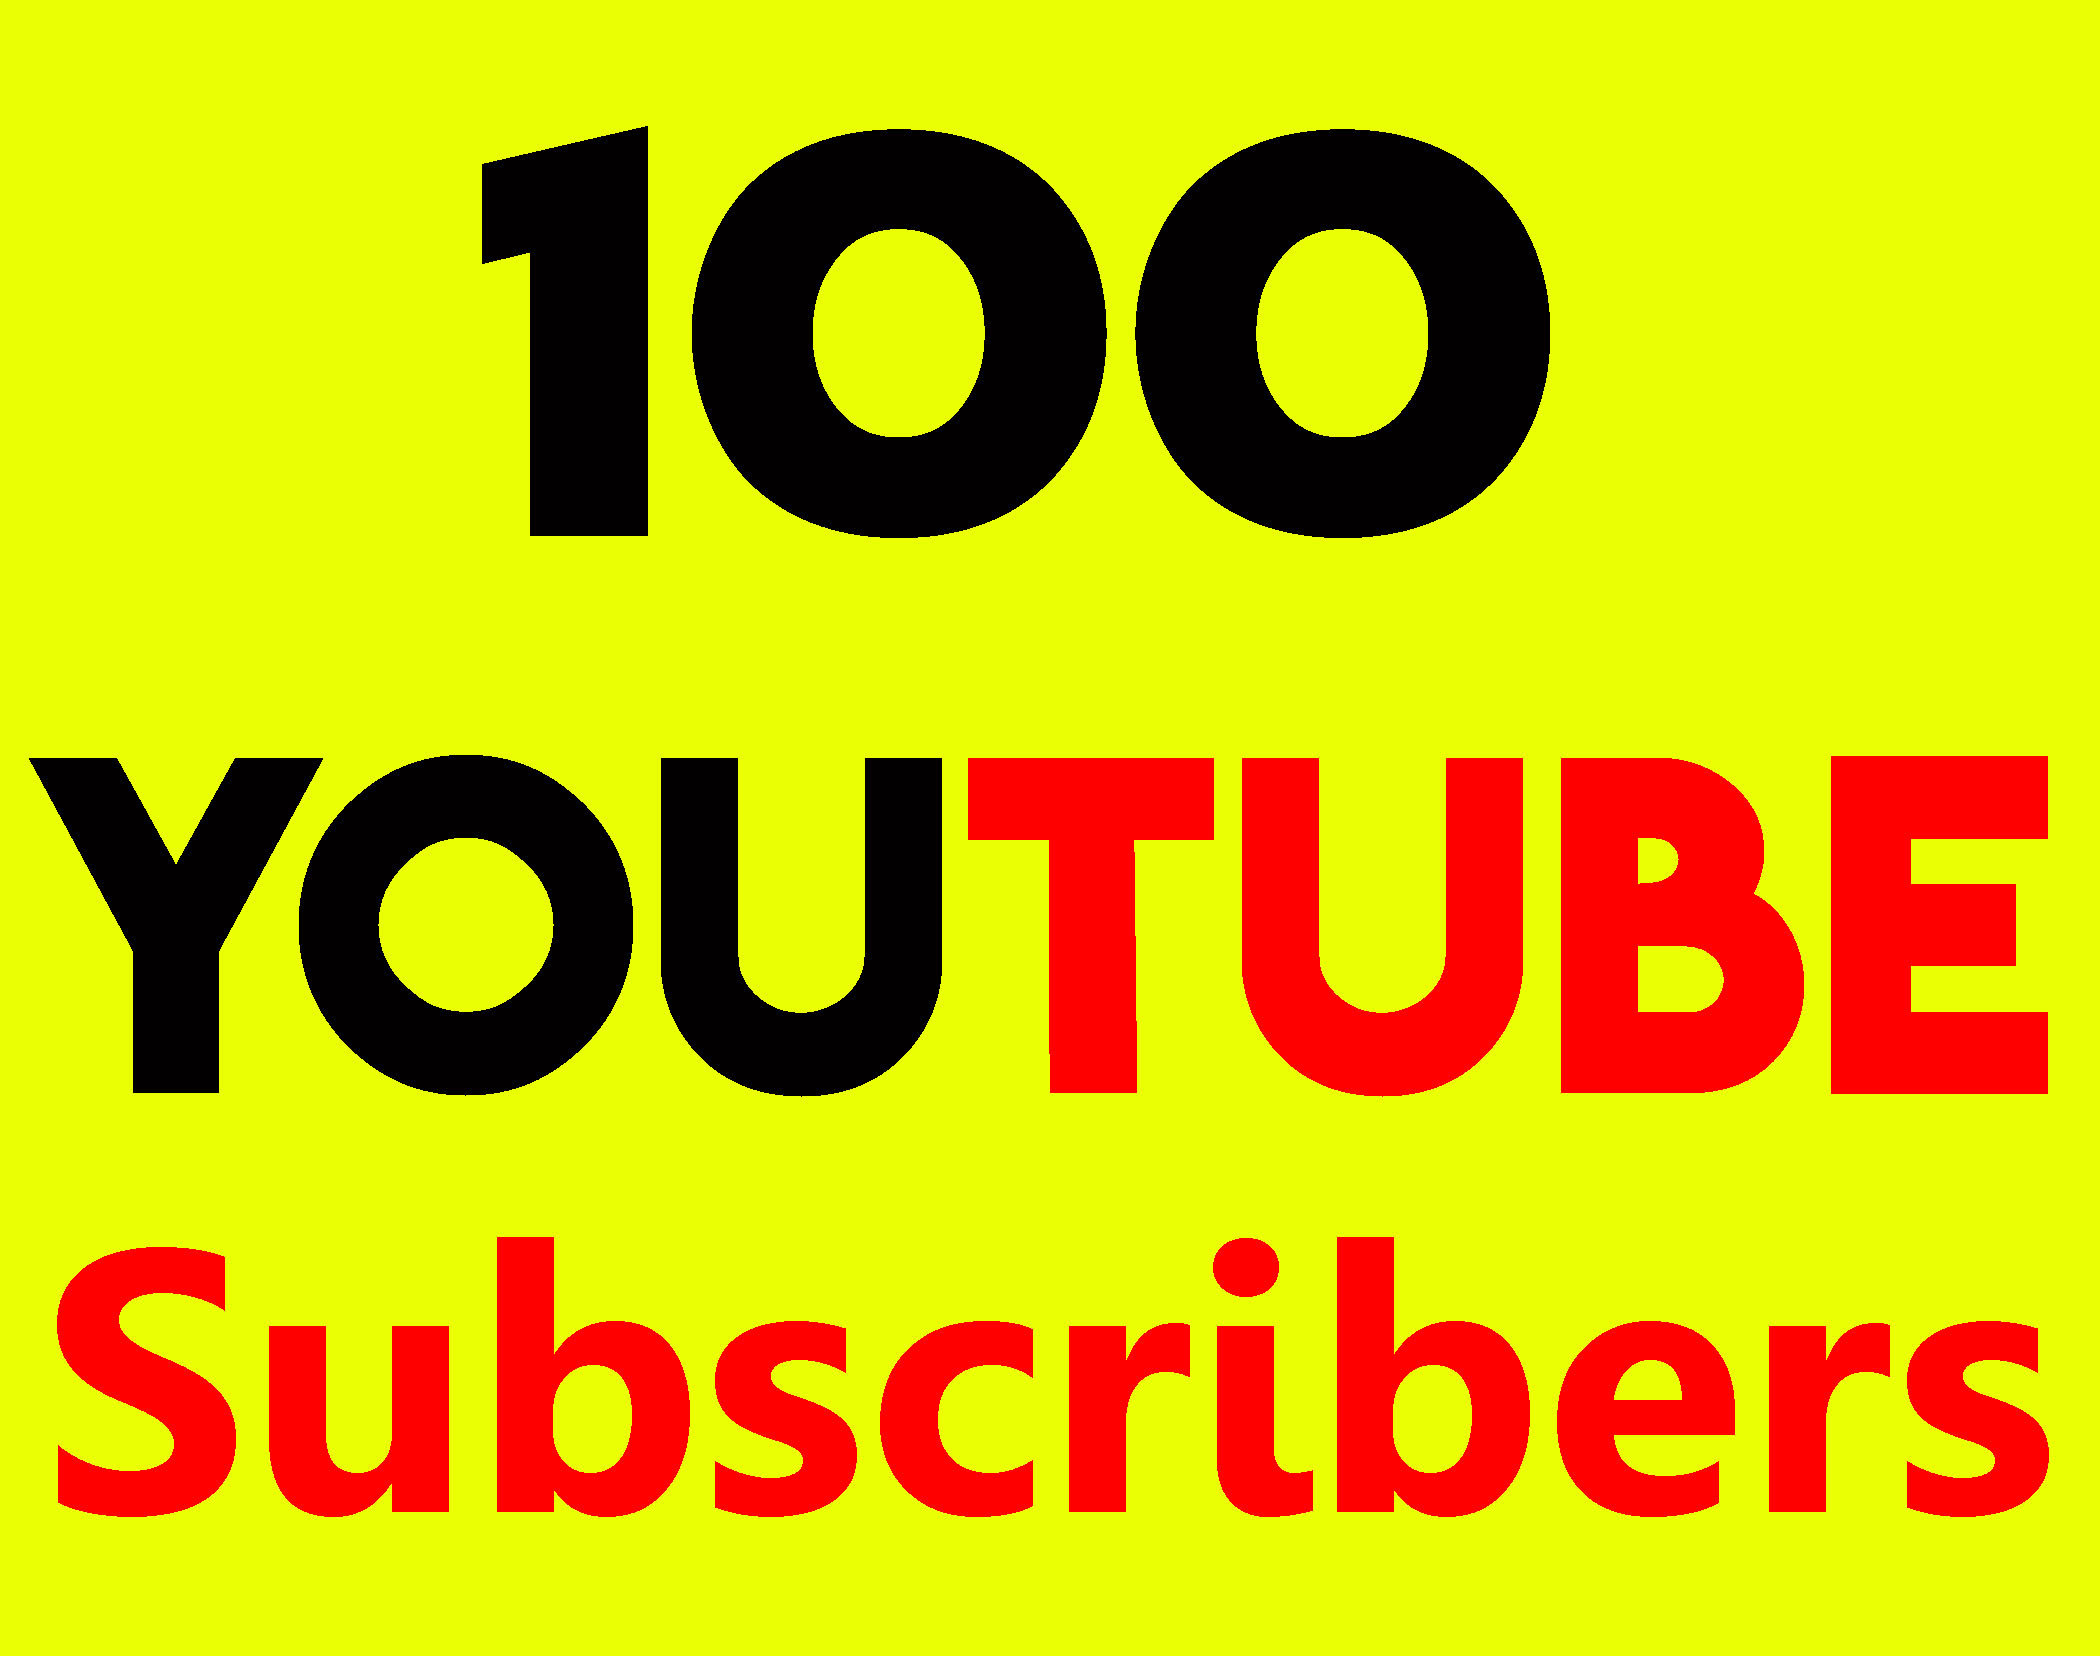 how to get 100 subscribers on youtube fast